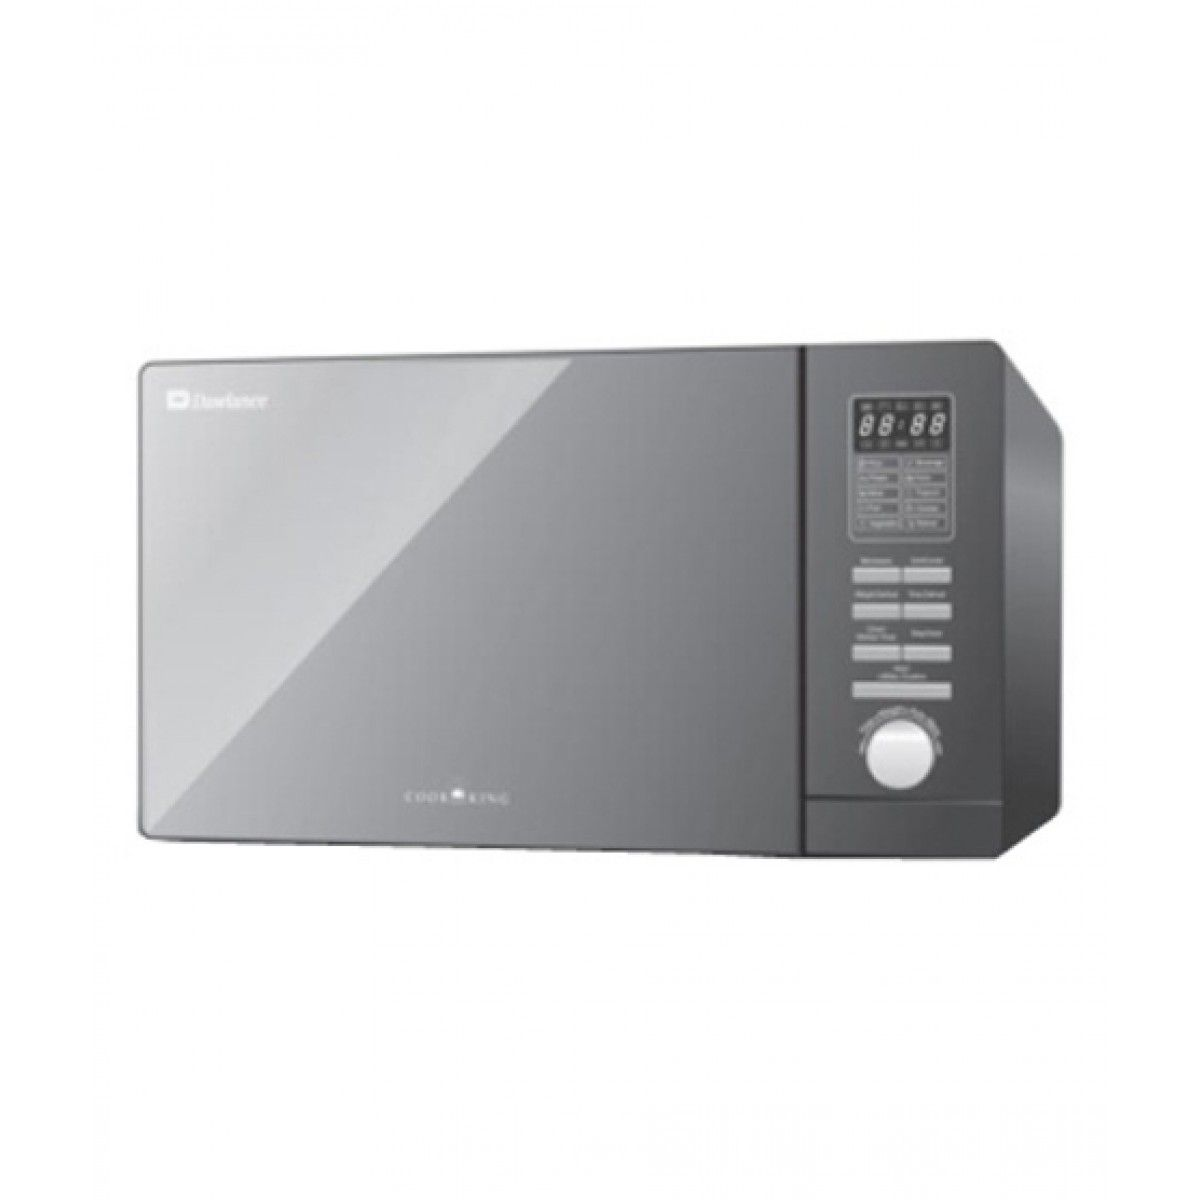 Dawlance DW-128-G Cooking Series Microwave Oven 26 Ltr